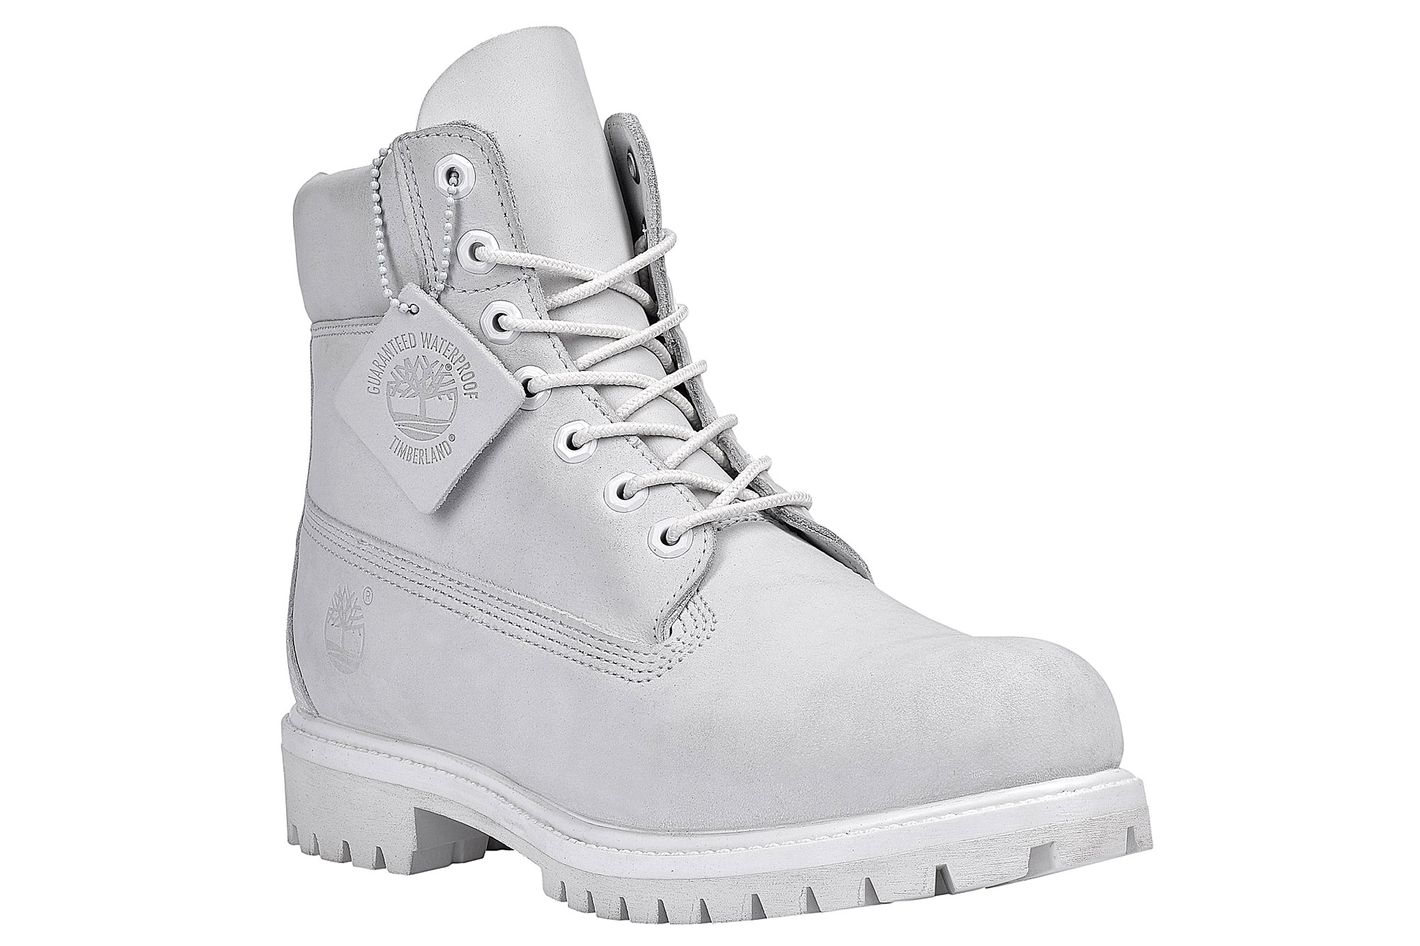 Timberland Limited Release Ghost White men's boots